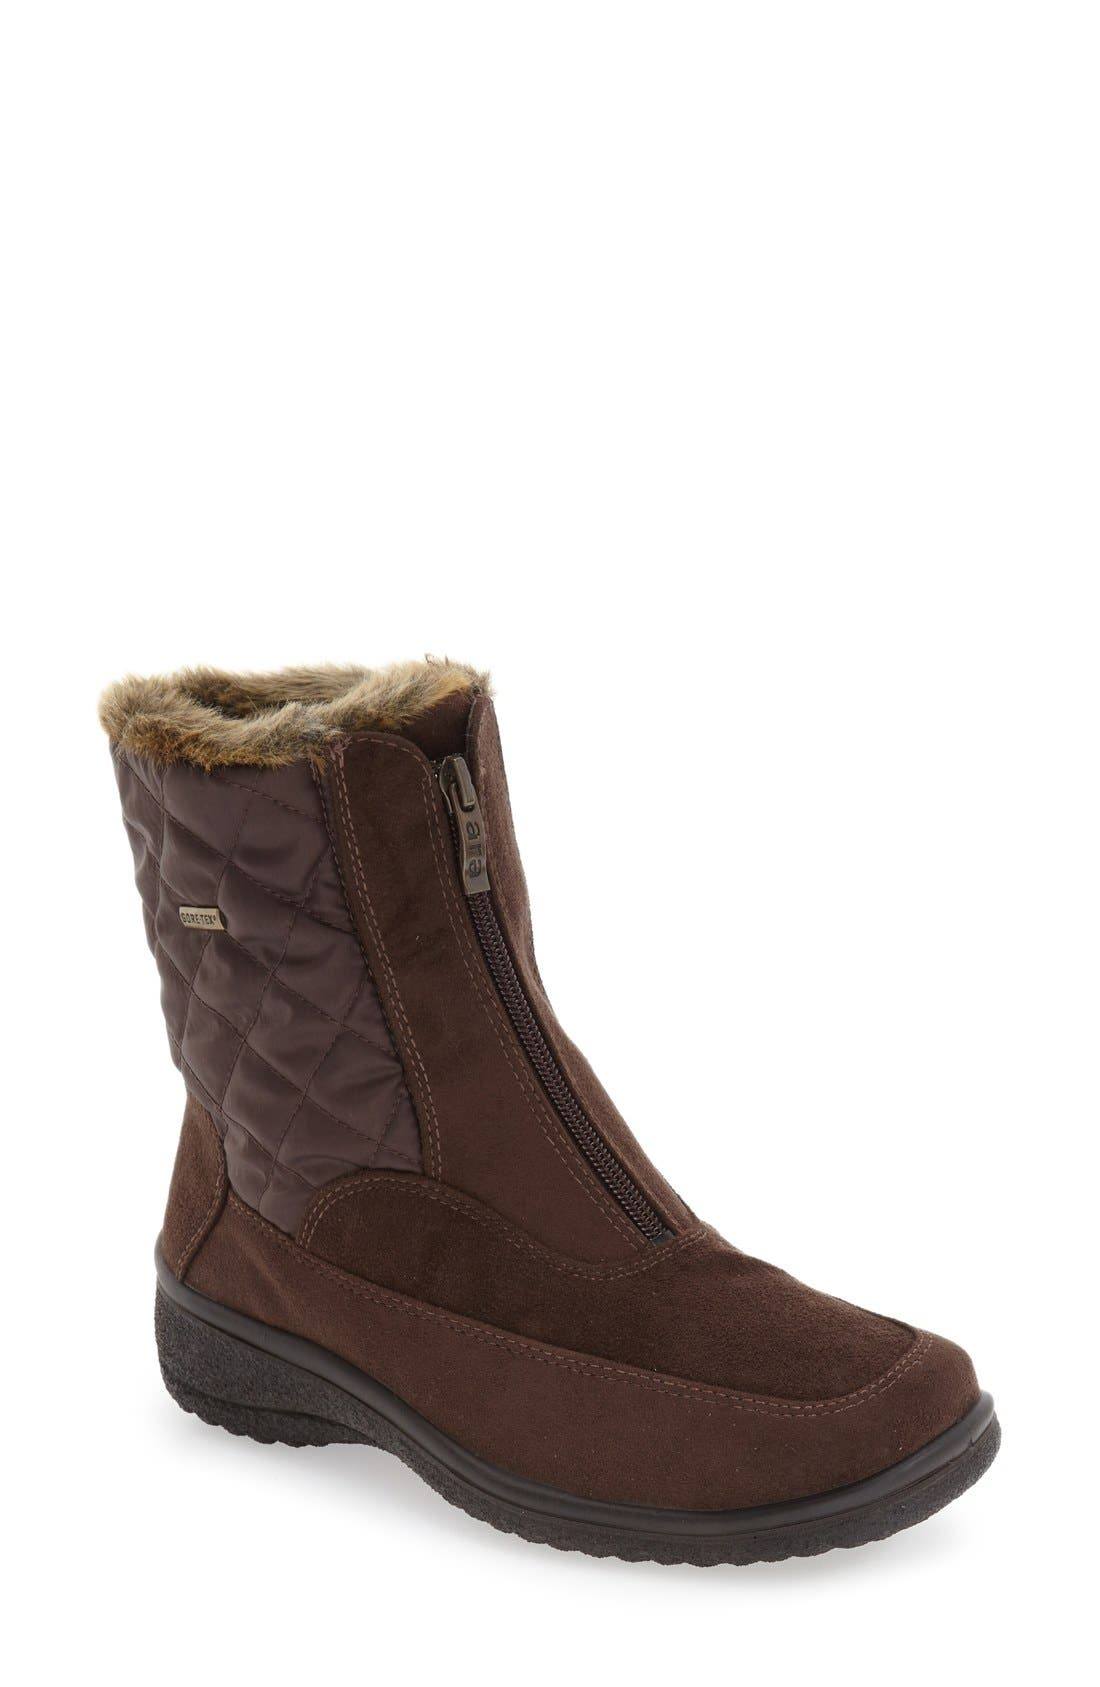 Alternate Image 1 Selected - ara 'Maeko' Waterproof Gore-Tex® Bootie (Women)